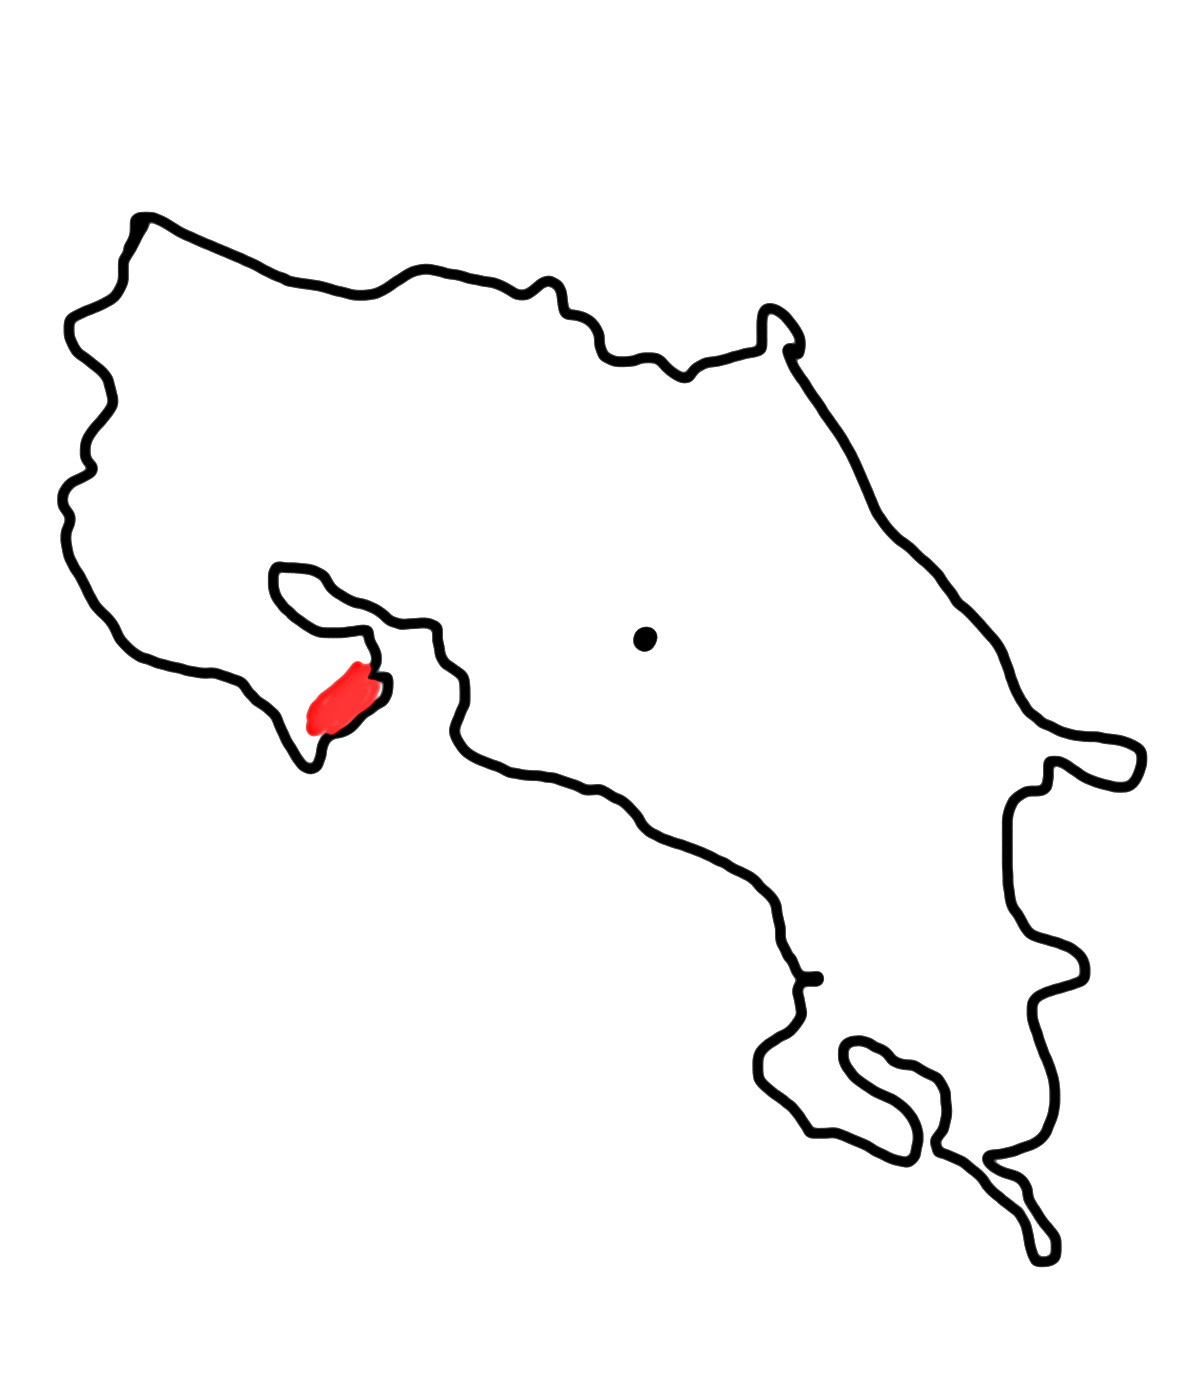 Central Pacific - Half Island Nicoya - In the South